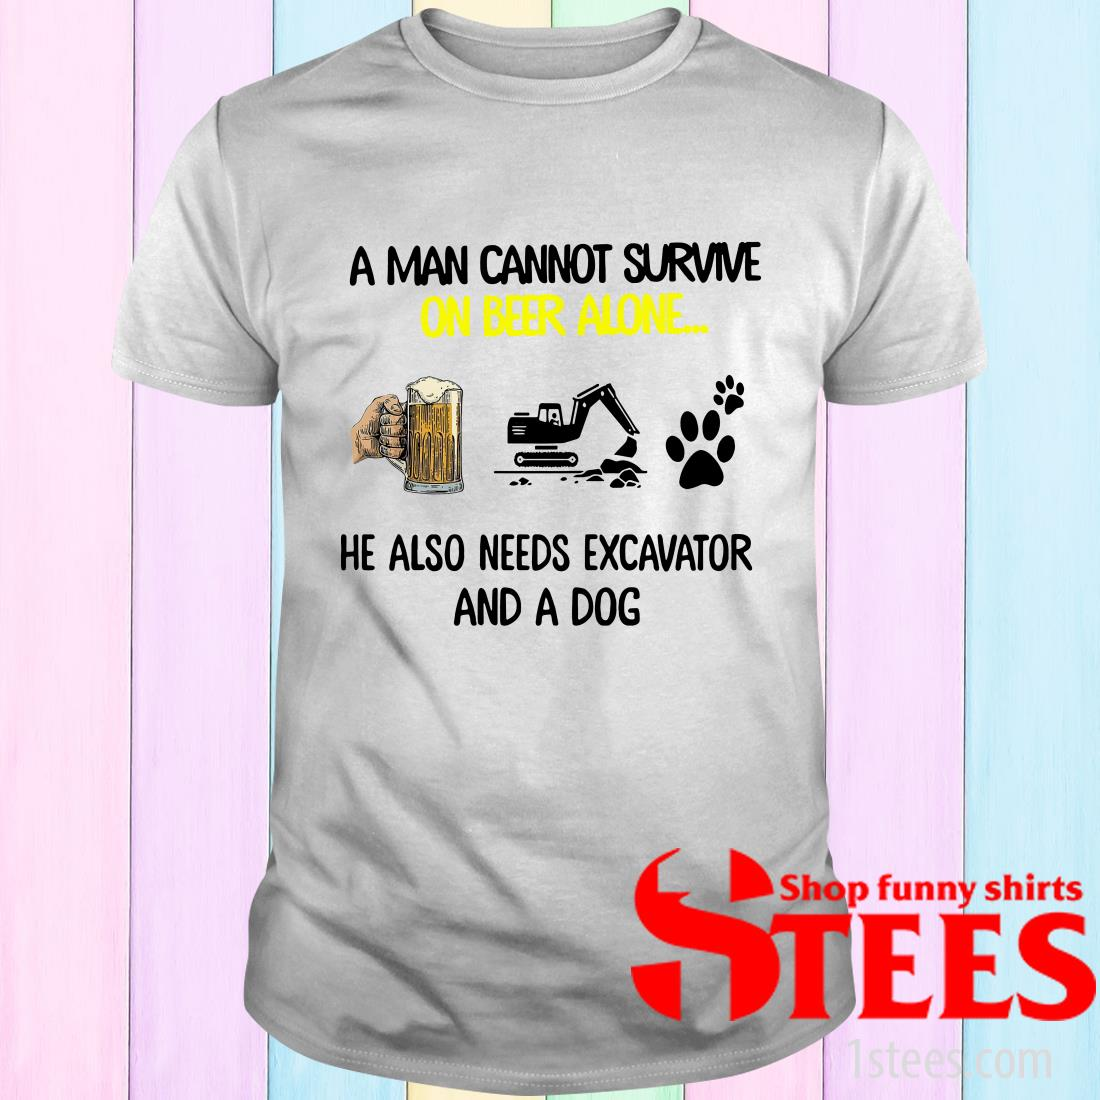 A Man Cannot Survive On Beer Alone He Also Needs Excavator And A Dog T-Shirt